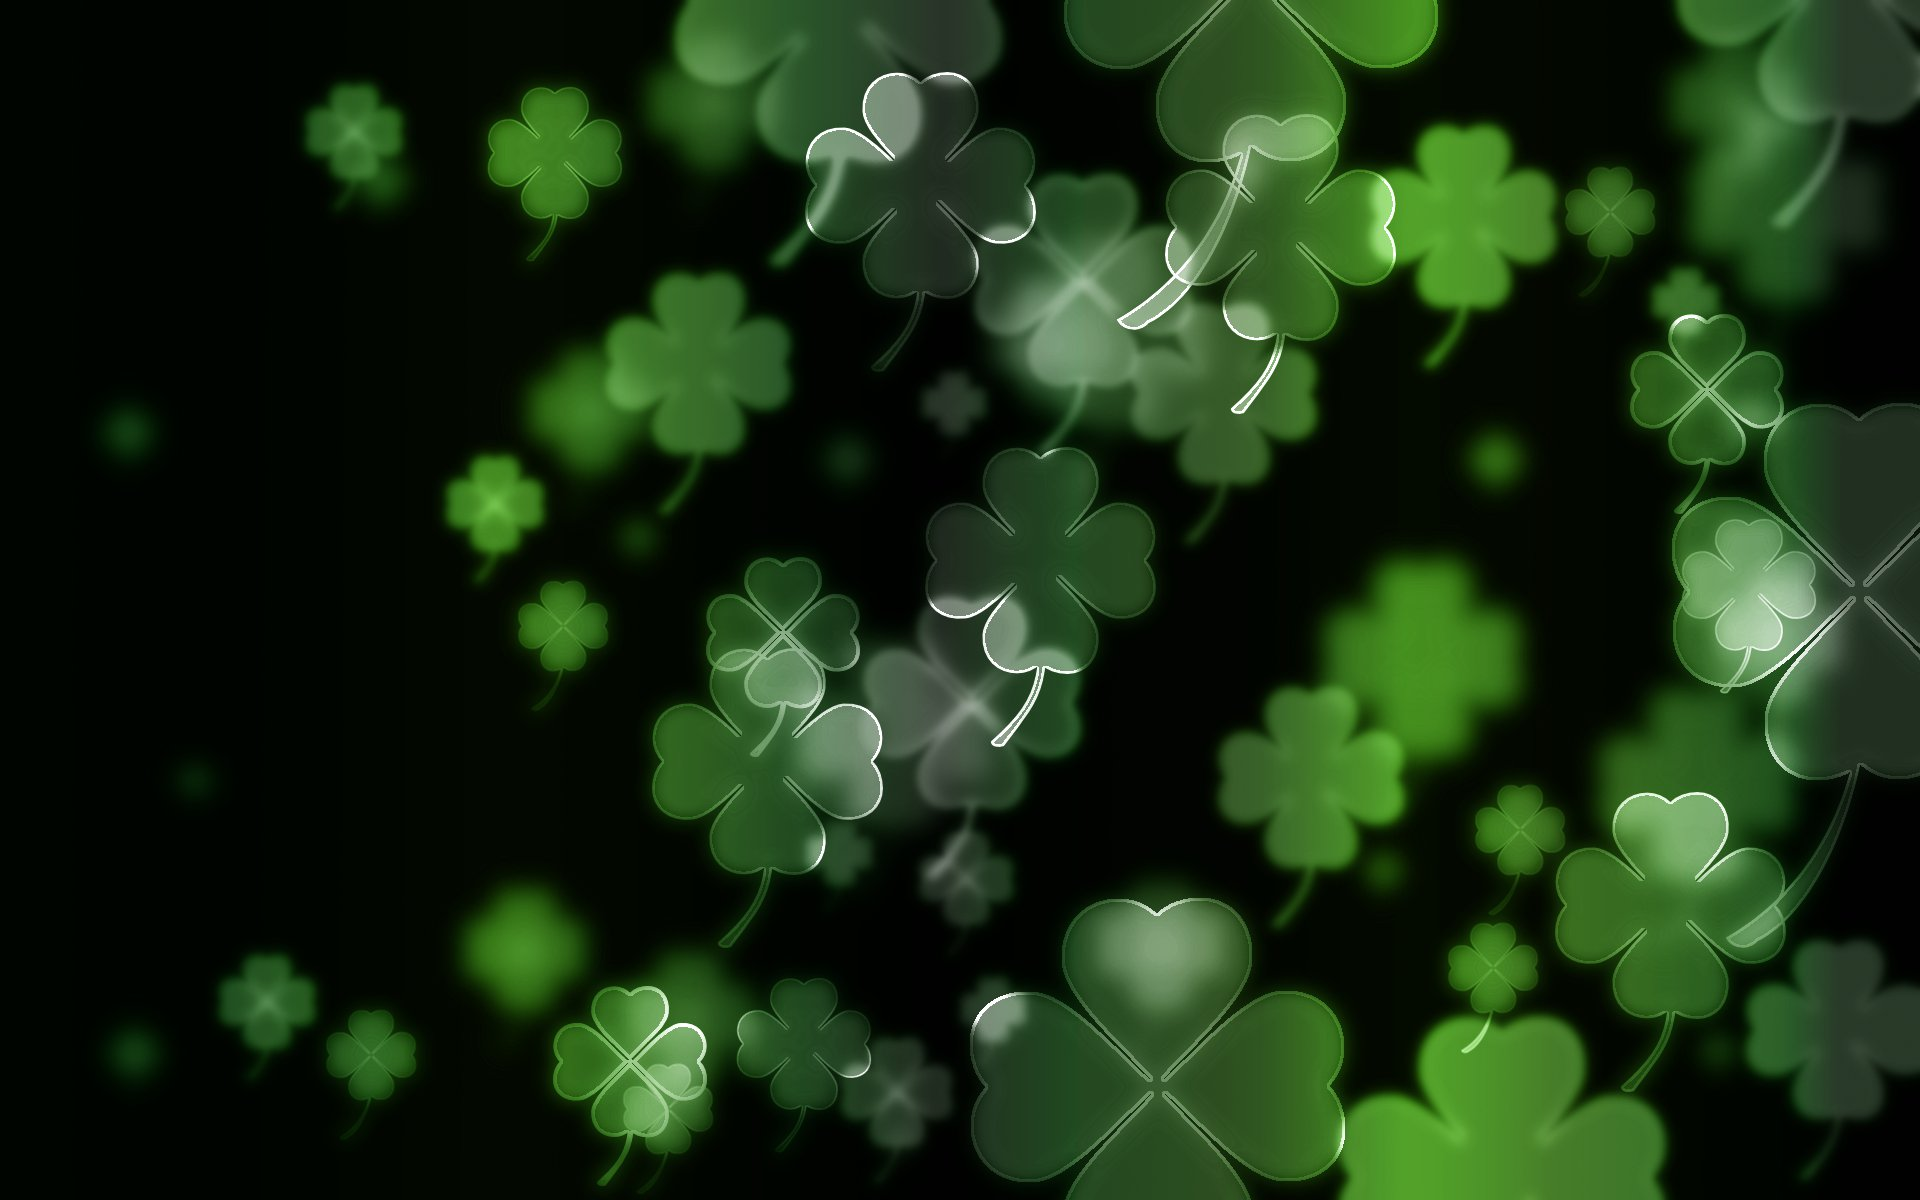 Free irish wallpaper sf wallpaper irish wallpaper backgrounds voltagebd Image collections